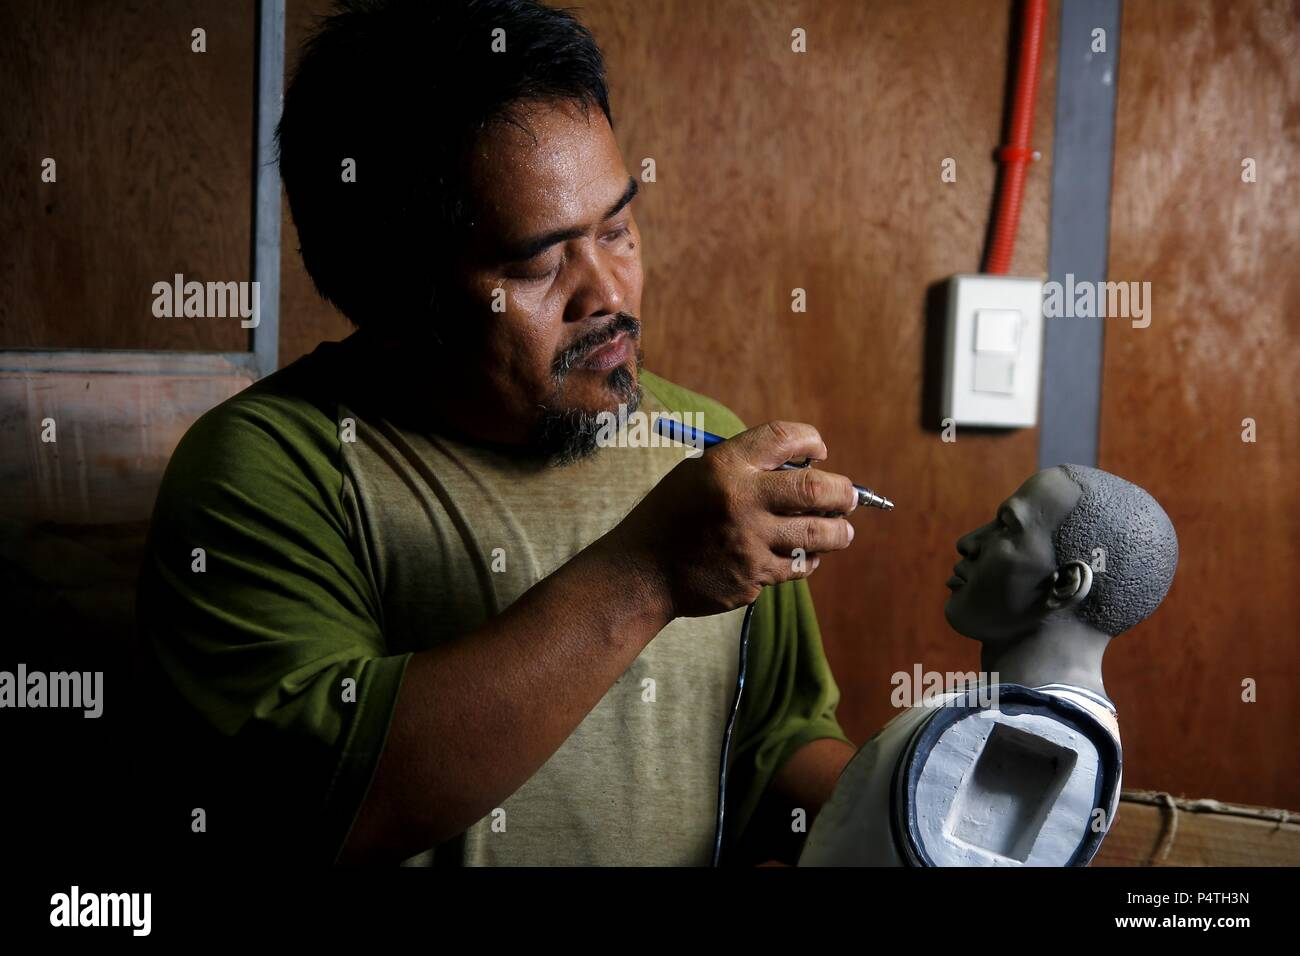 TAYTAY, RIZAL, PHILIPPINES - JUNE 21, 2018: An artist airbrushes colors to a statue in his studio. - Stock Image